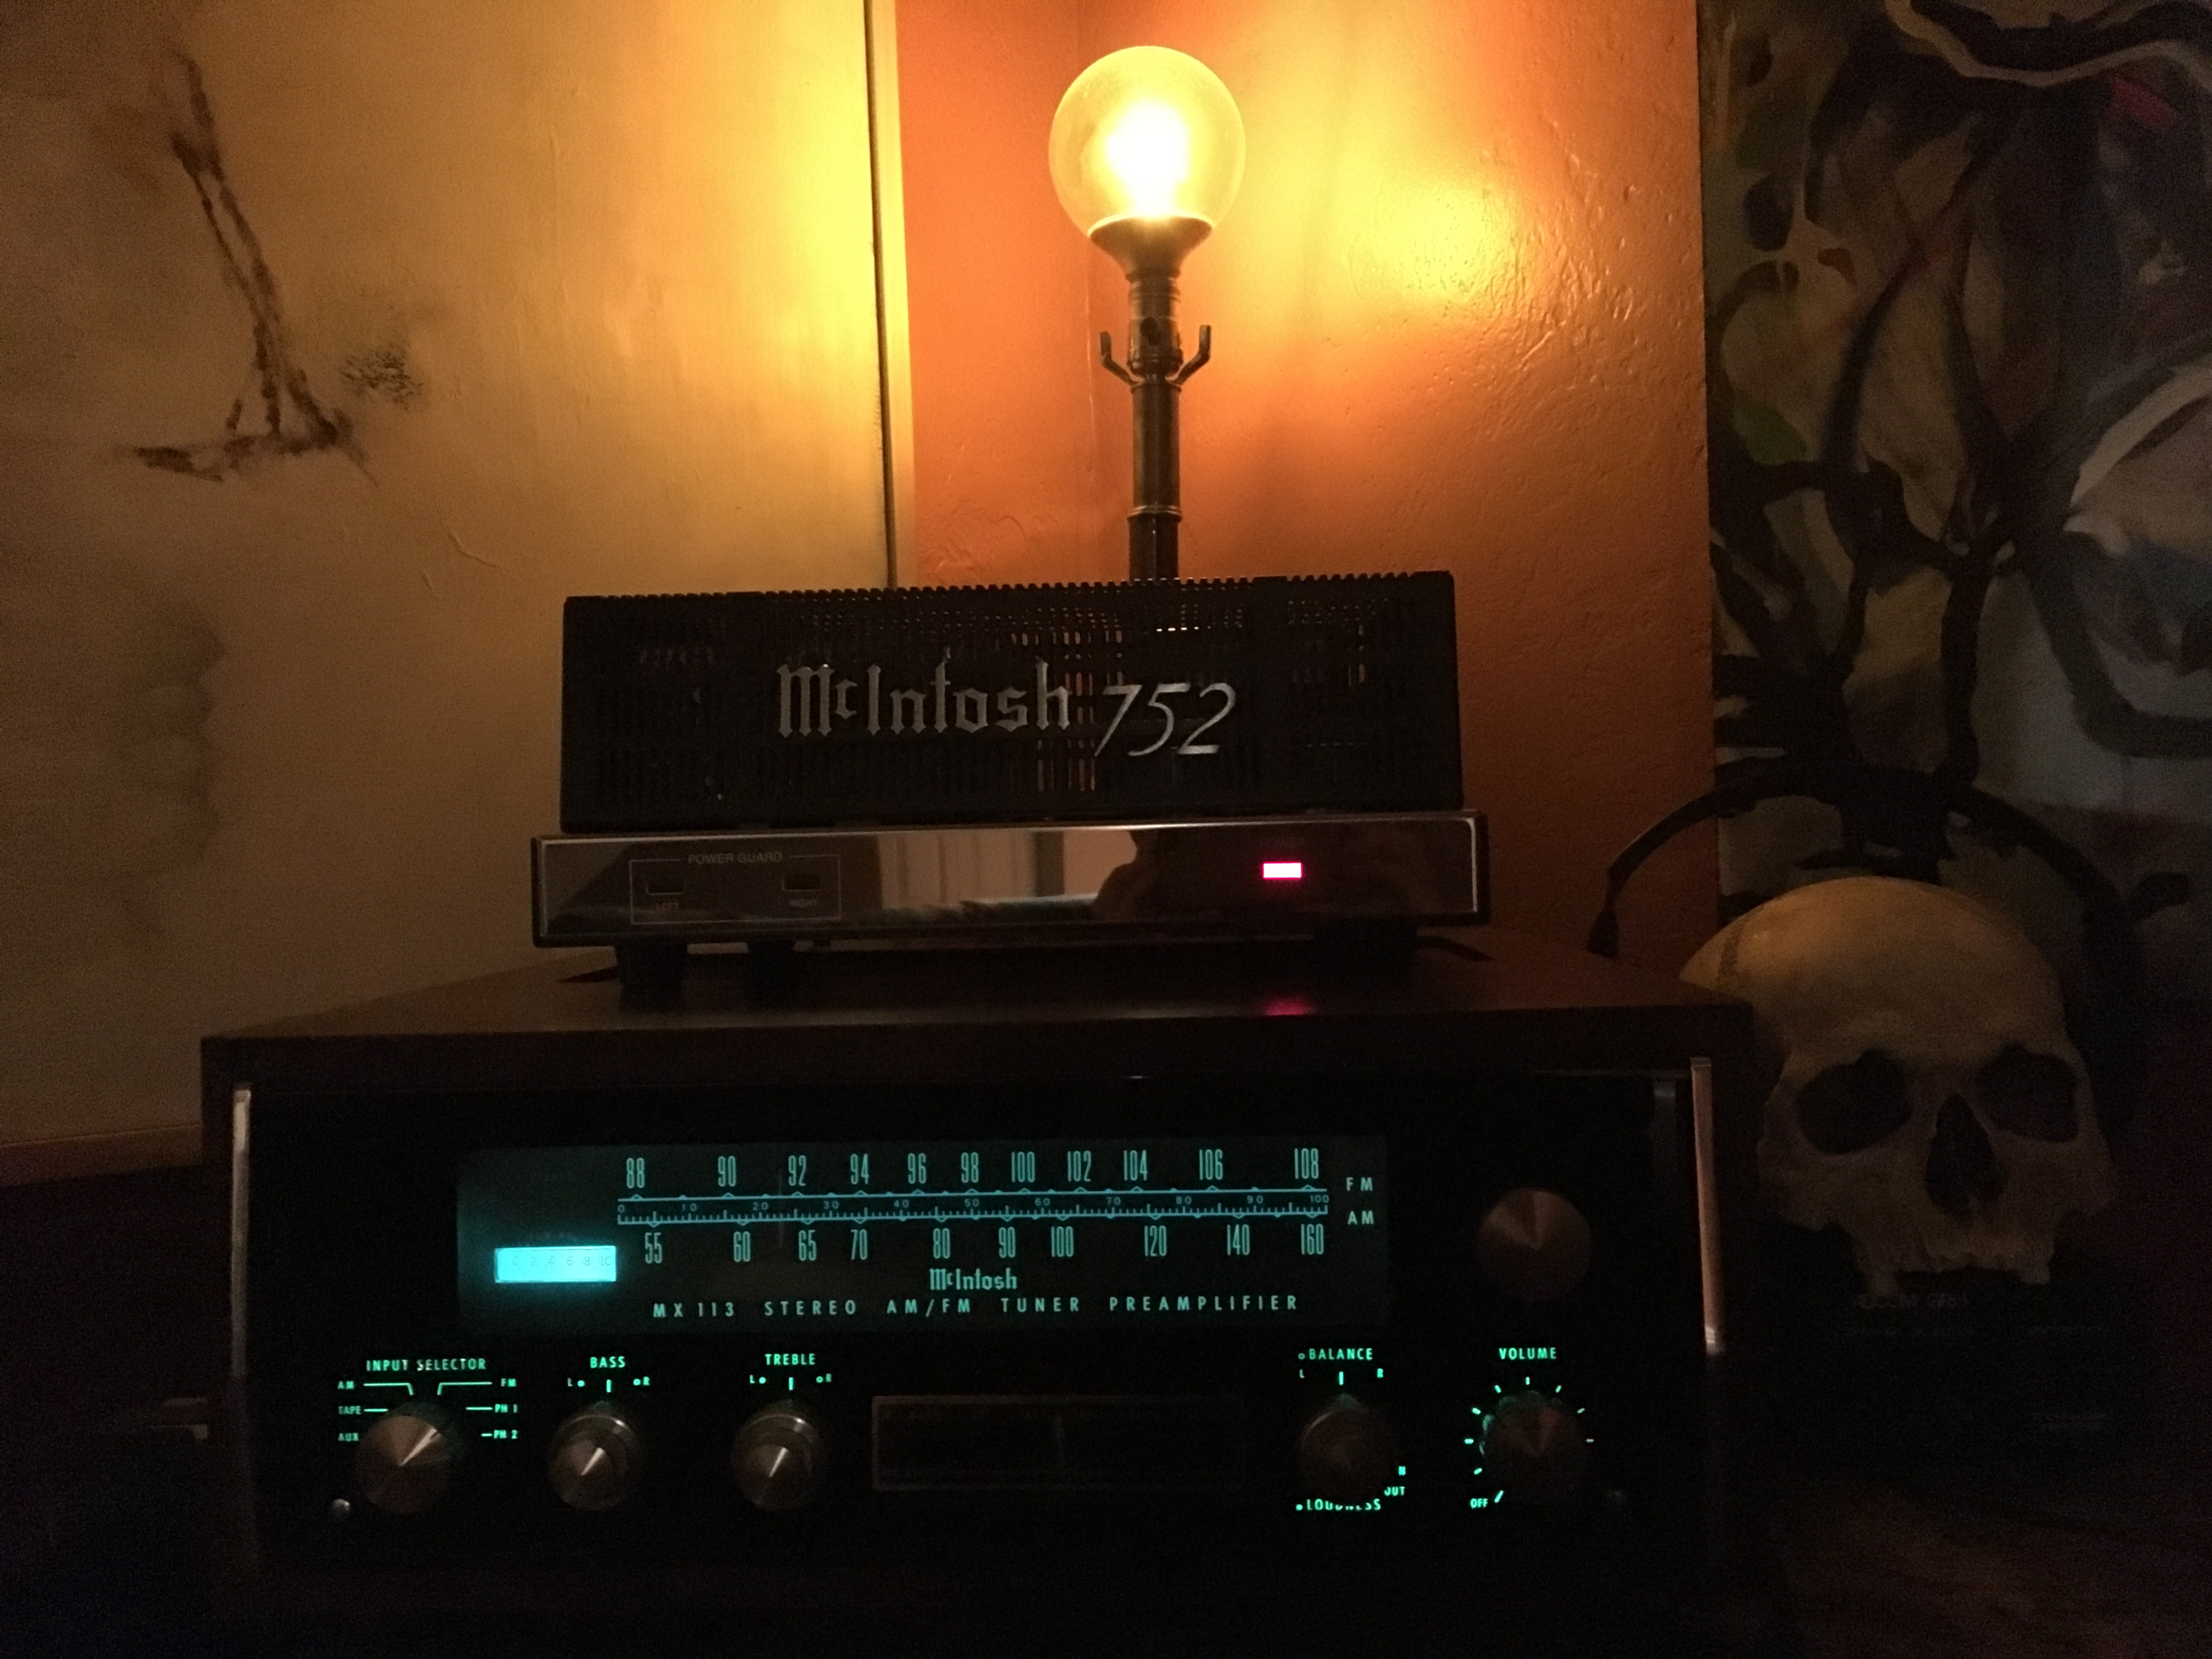 Preamp Ownerswhat Are You Using 2 Channel Home Audio The Band Preamplifier Edited September 29 2017 By Isotopesope Like